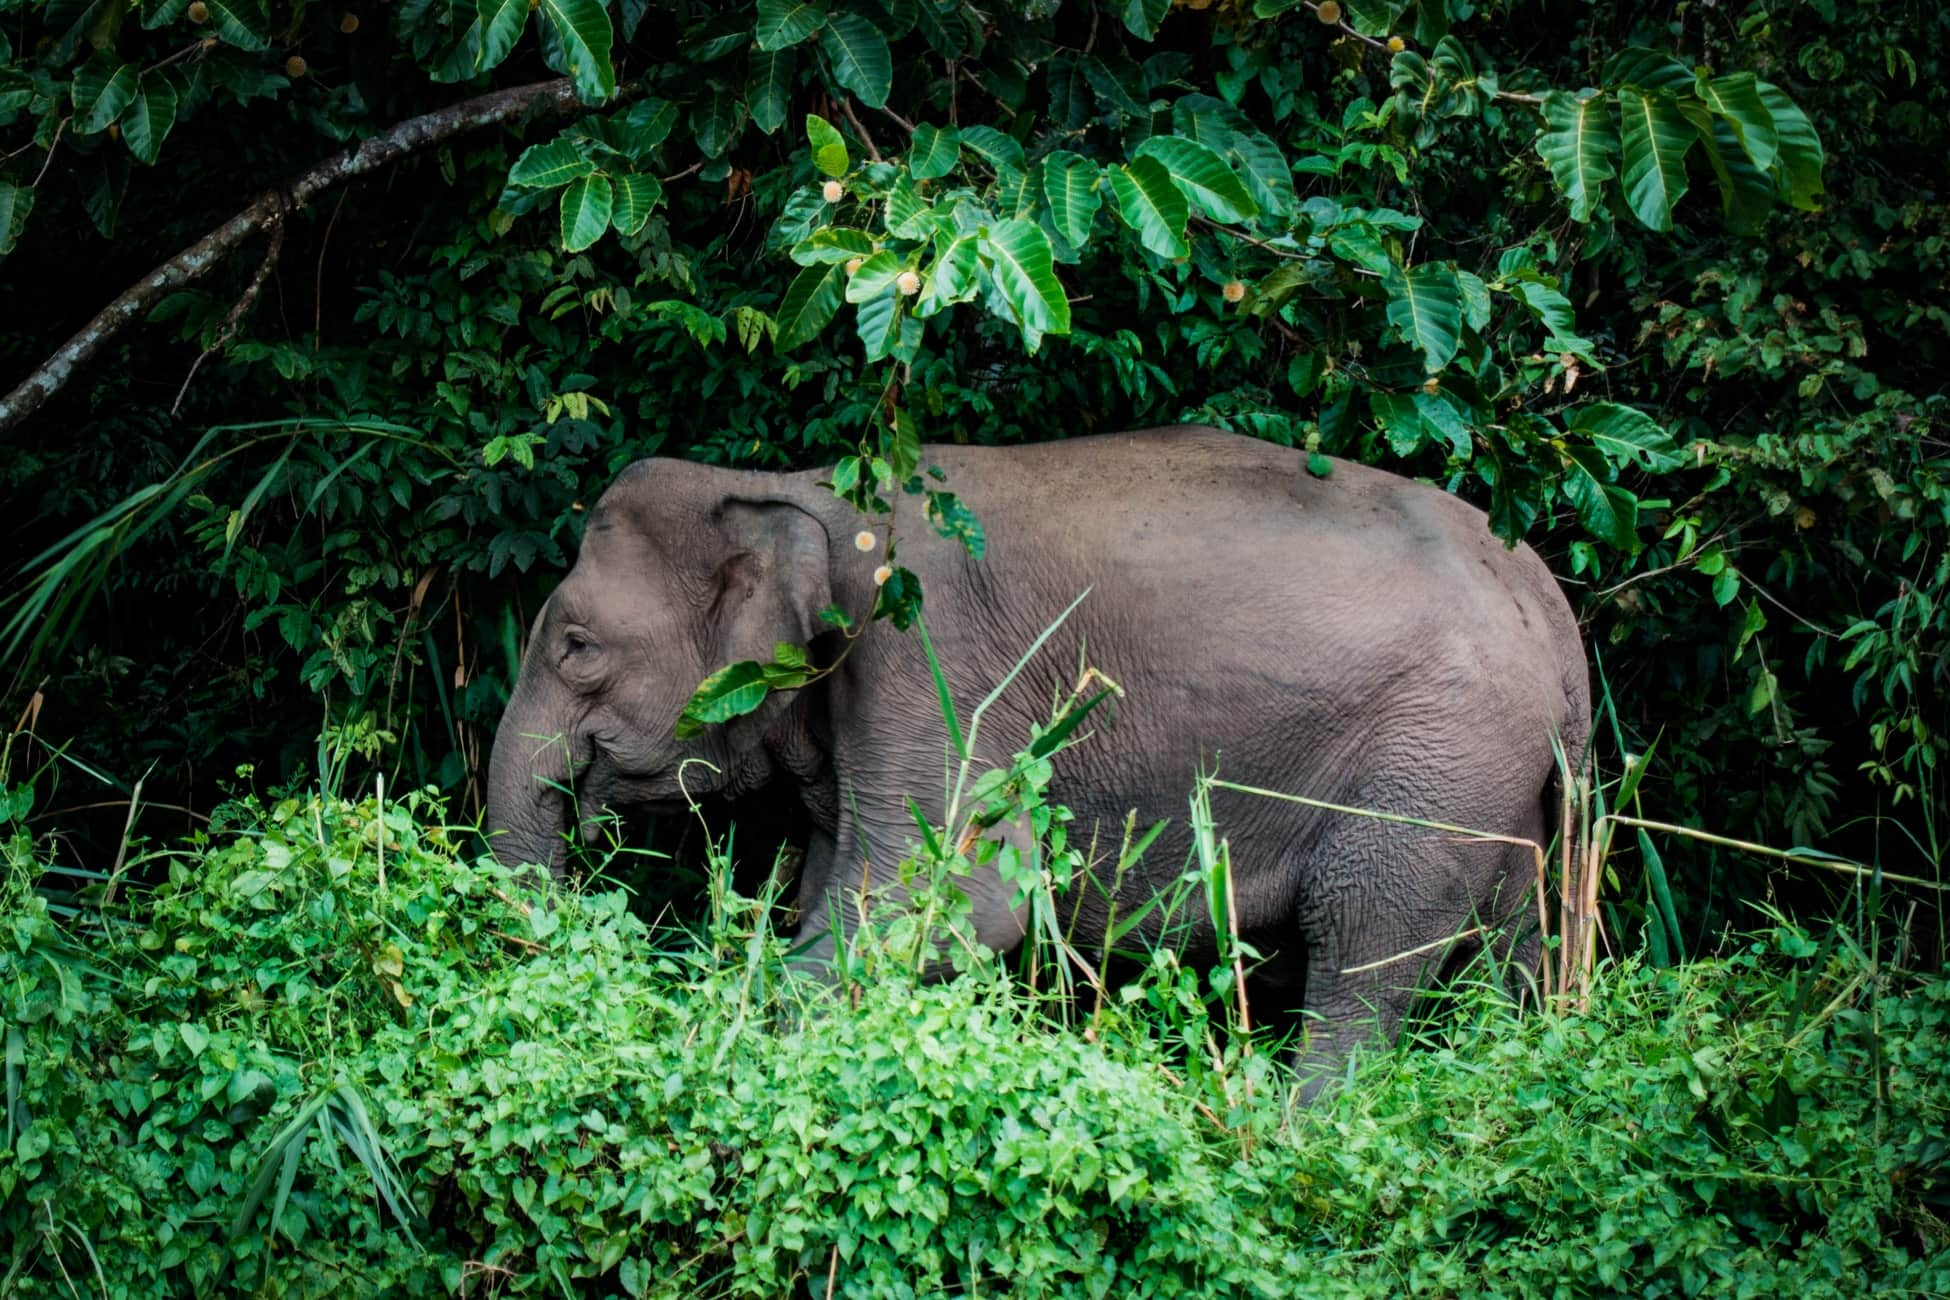 Ethical elephant experiences in Asia